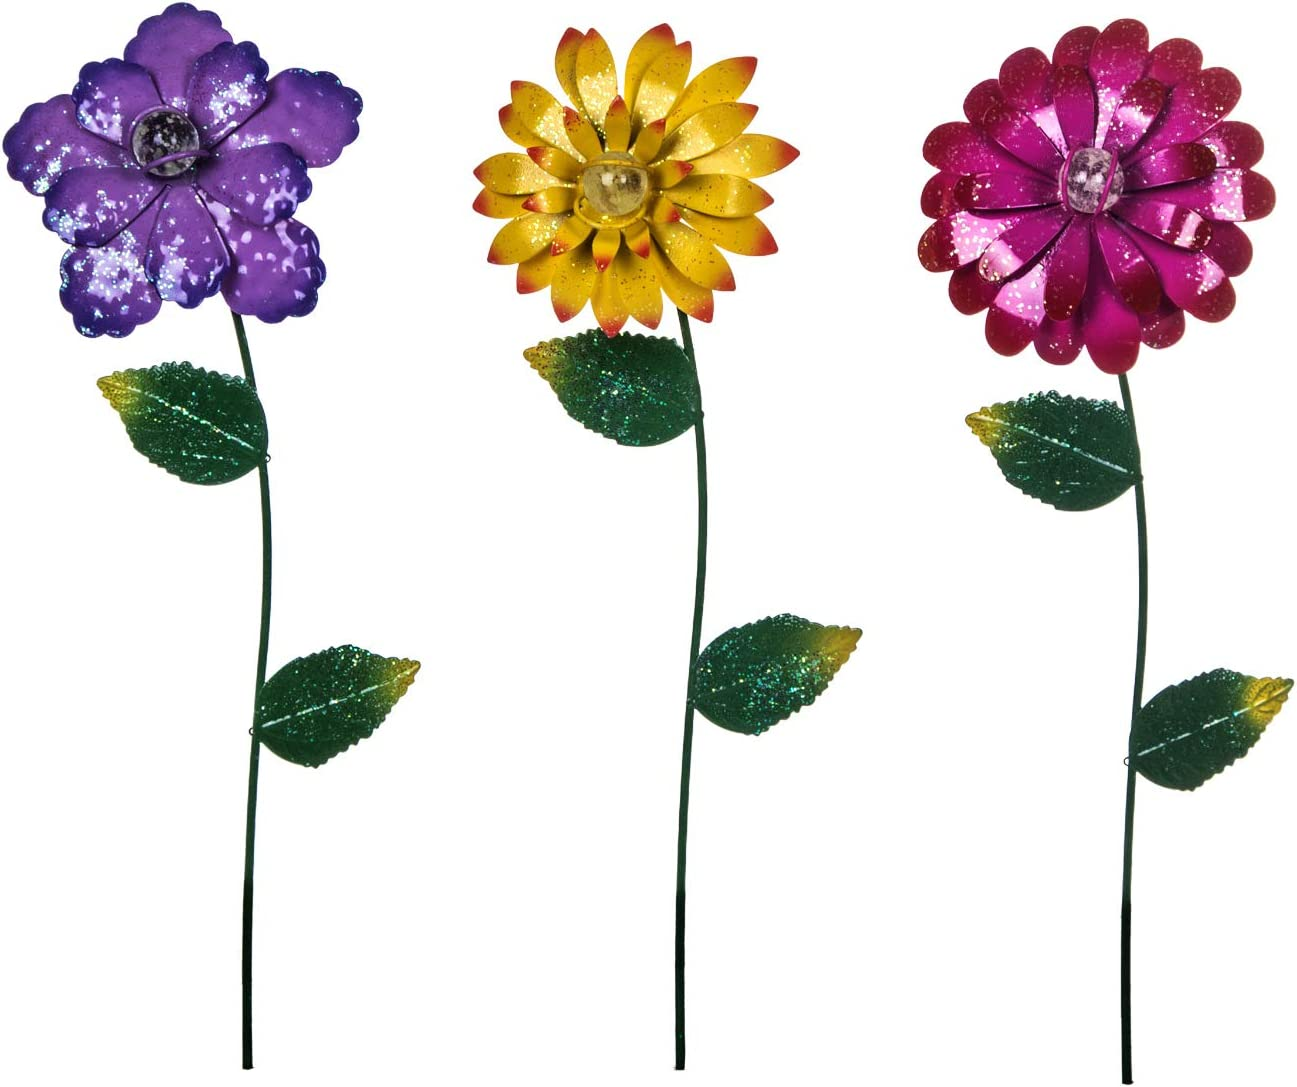 DUSVALLY Metal Flower Stake Garden Stake Outdoor Glow in Dark Yard Lawn Ornaments Plant Pot Flower Bed Decor,Set of 3,Colorful